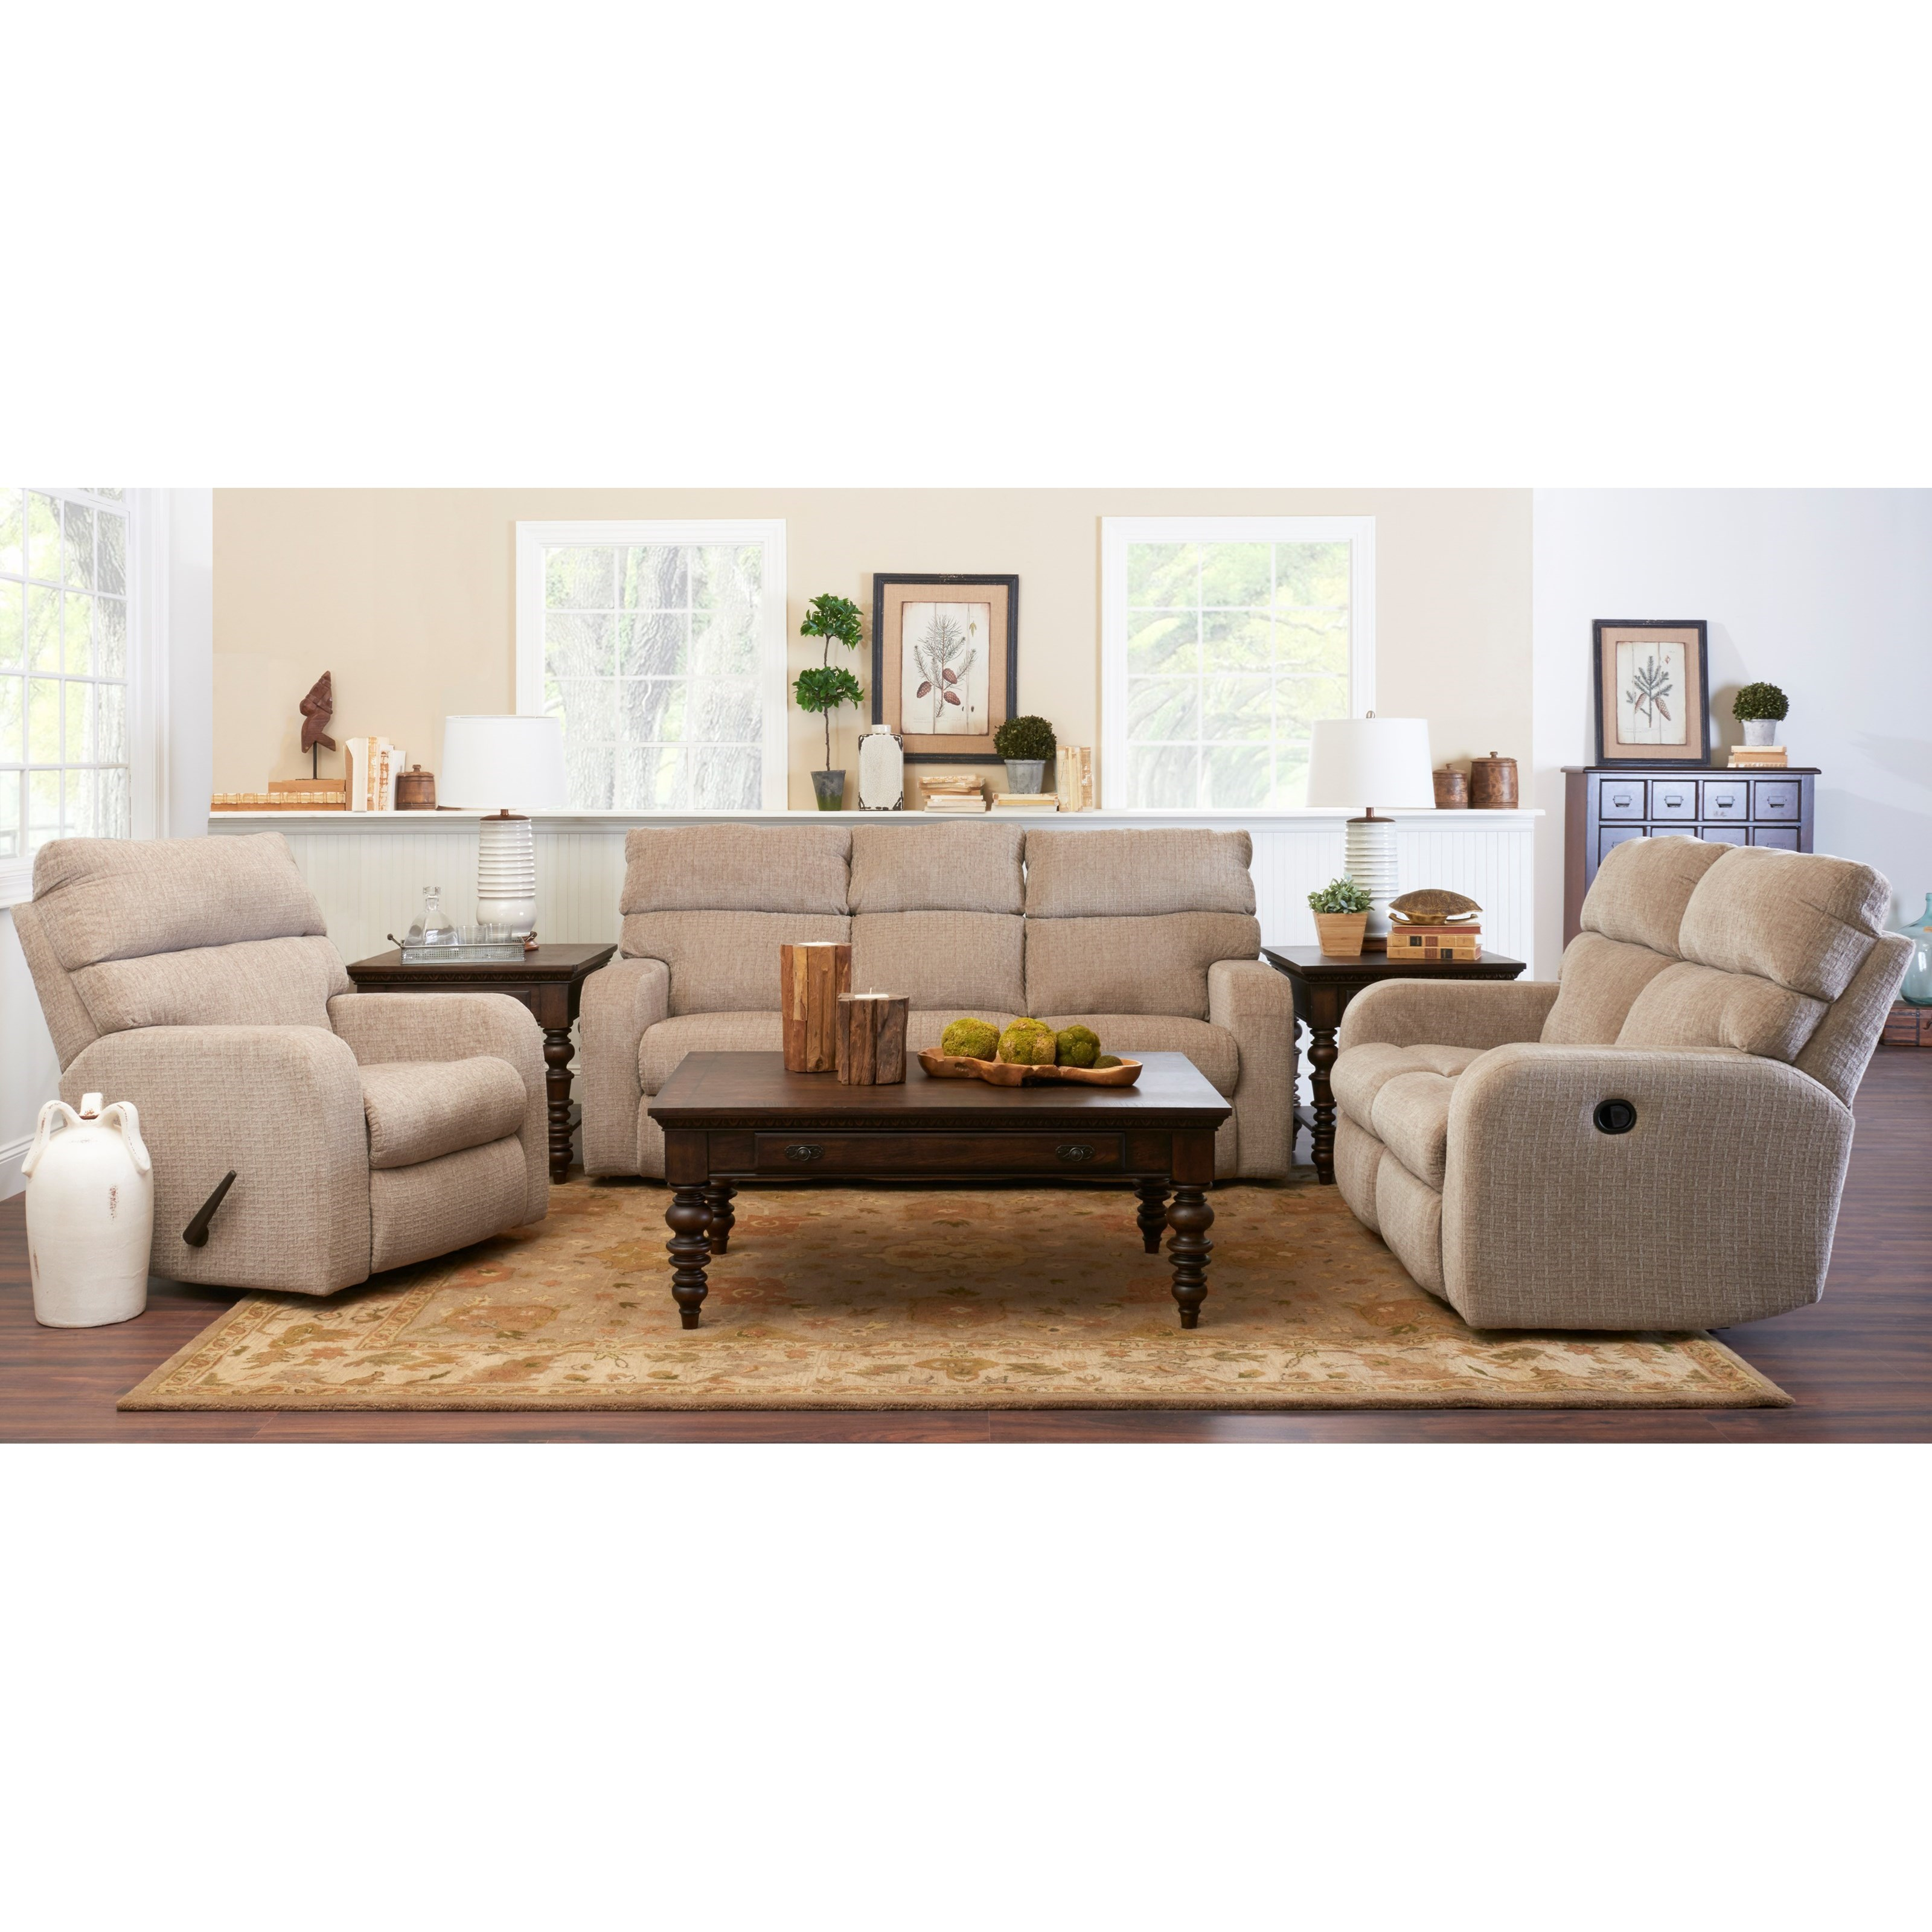 Bradford Dining Room Furniture Collection Klaussner Bradford 40203h Rrc Casual Reclining Rocking